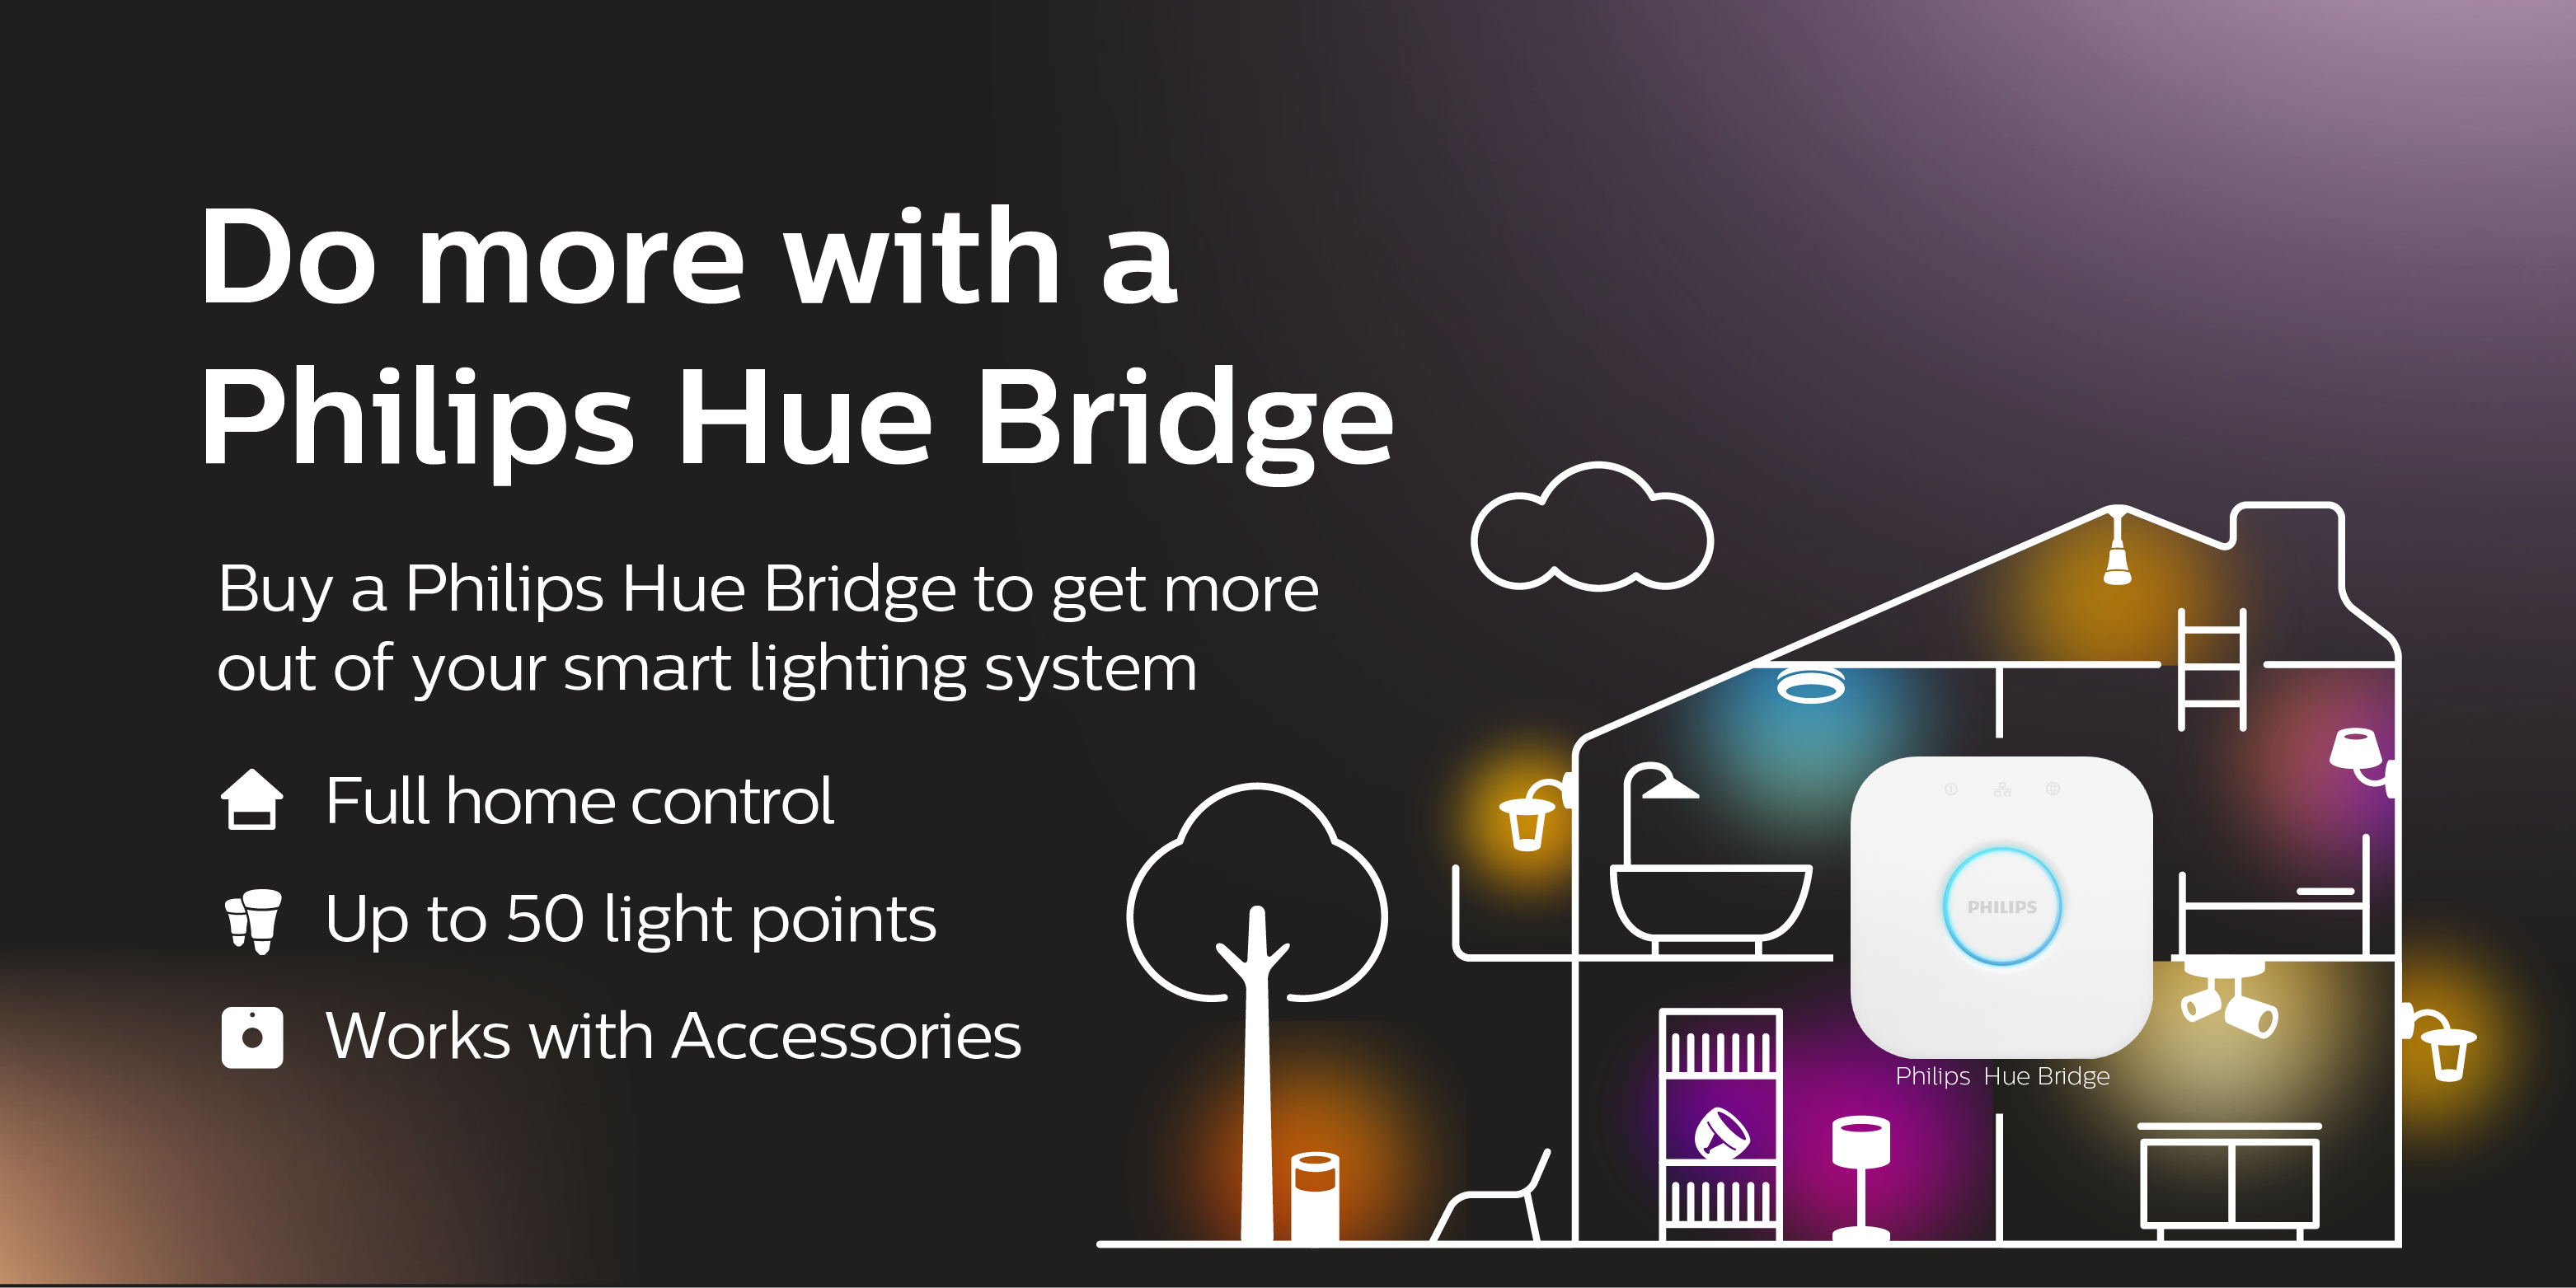 Do more with a Philips Hue bridge